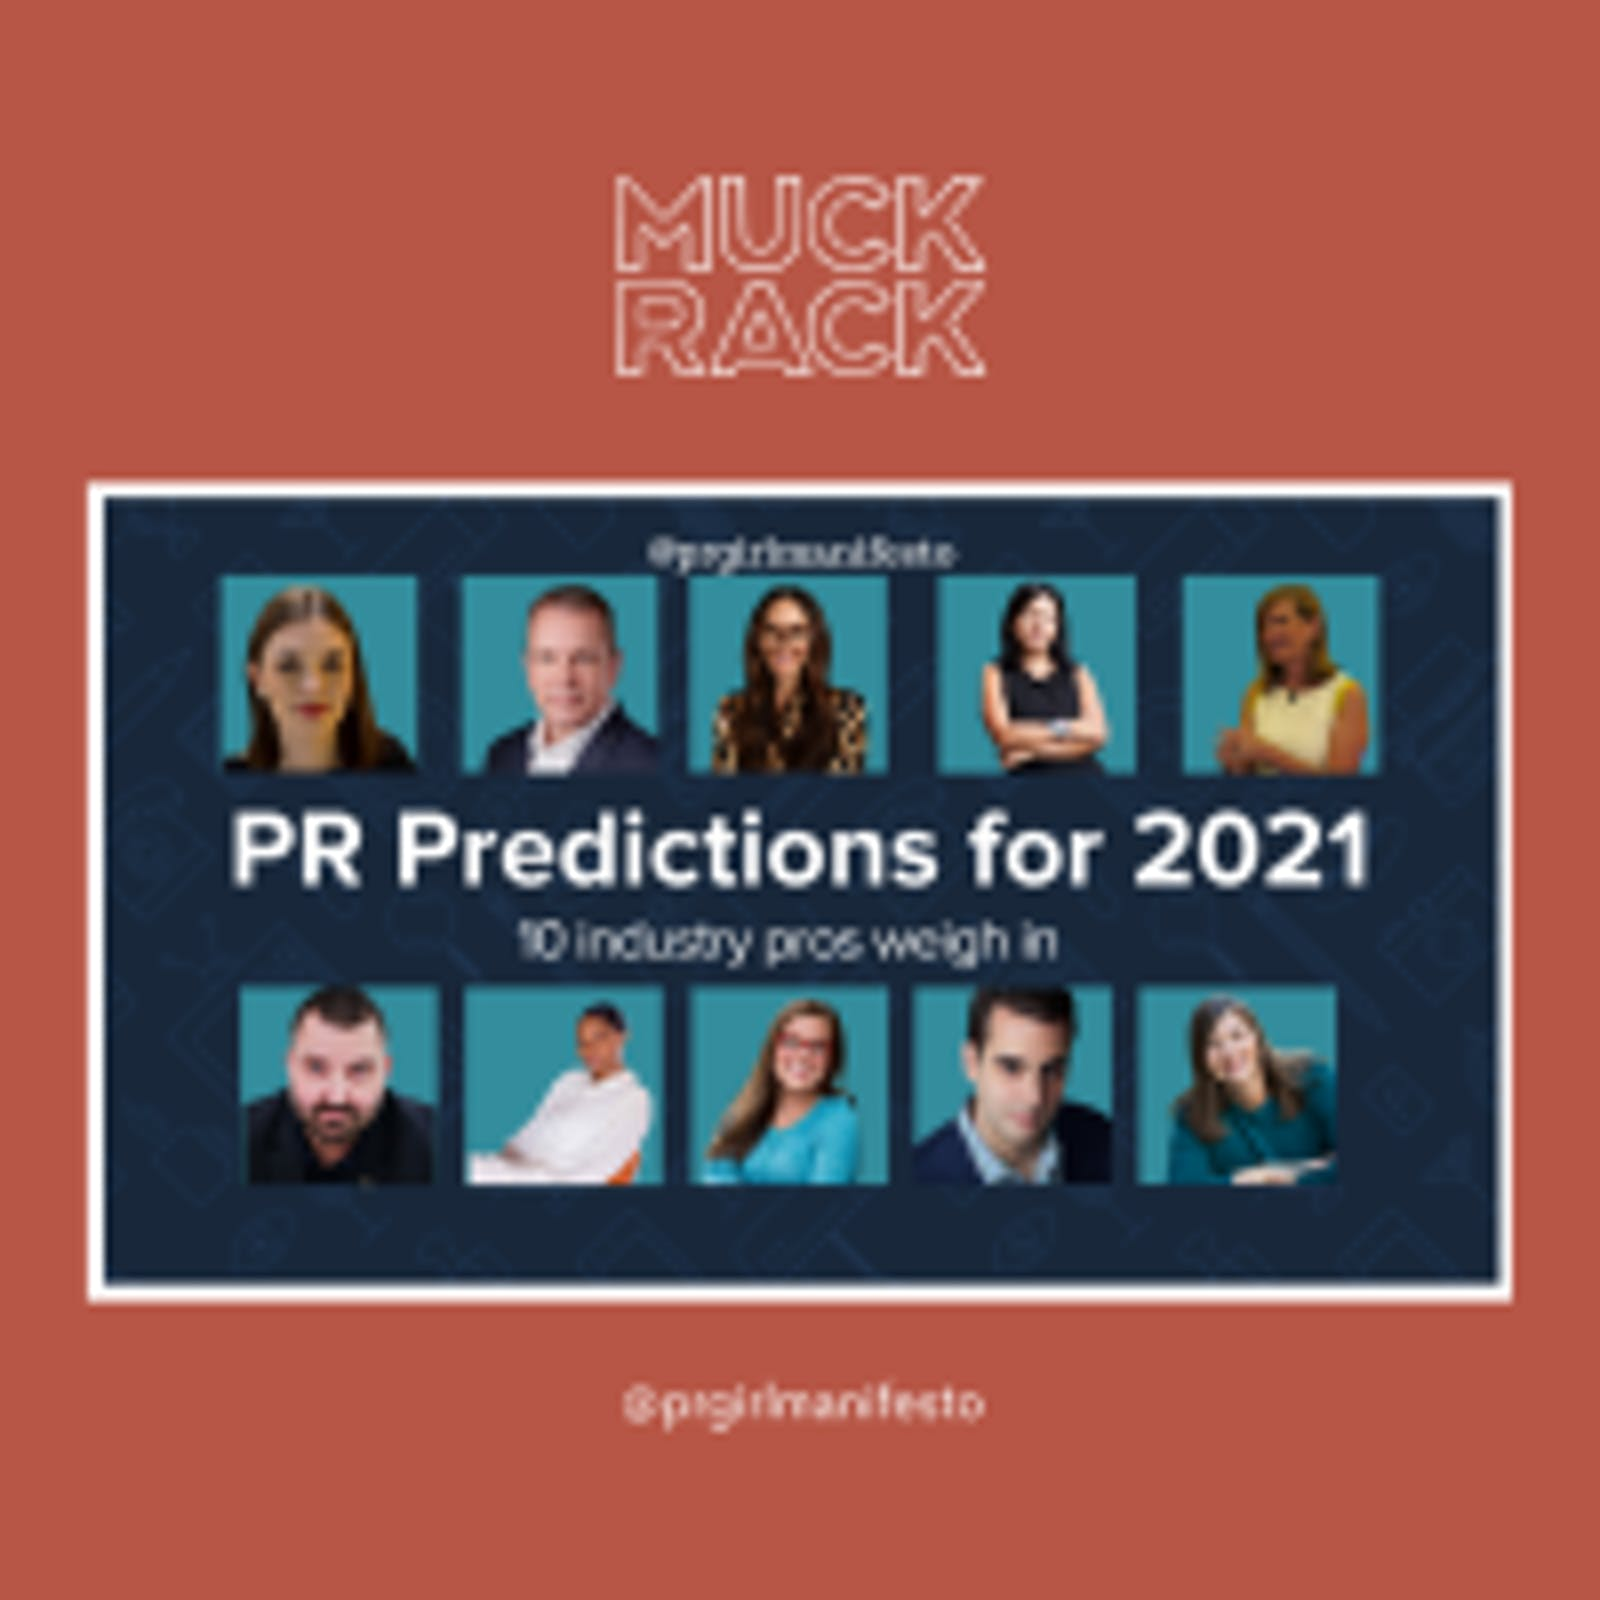 MUCK RACK - PR predictions for 2021: 10 industry pros weigh in